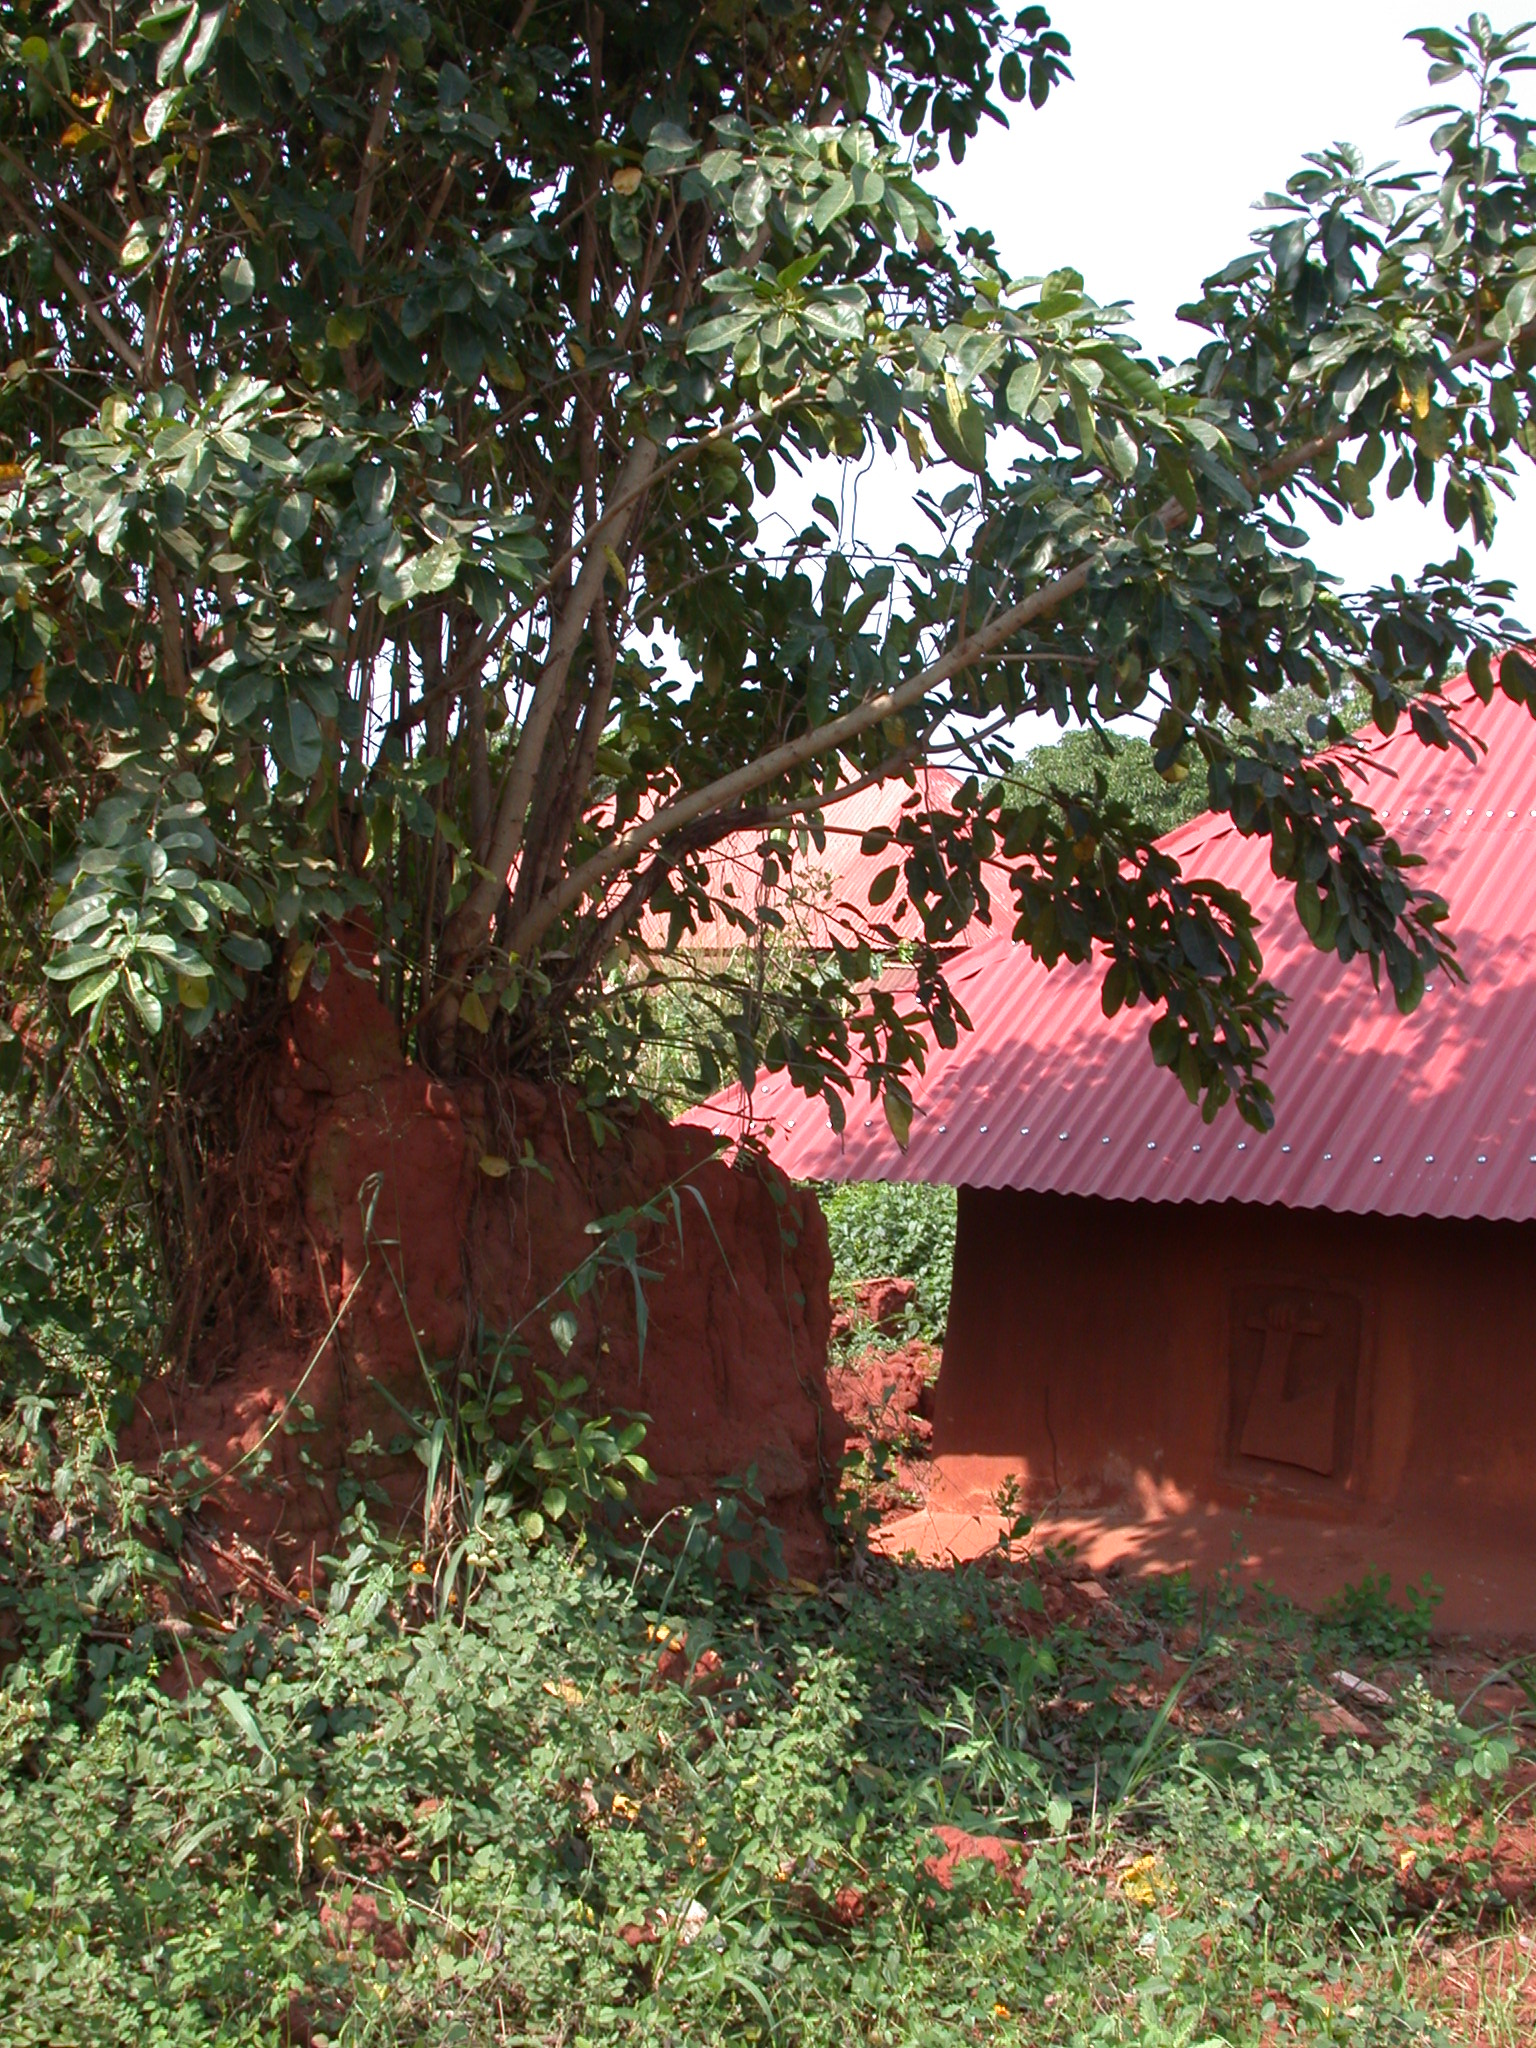 Palace of King Kpengla, Abomey, Benin